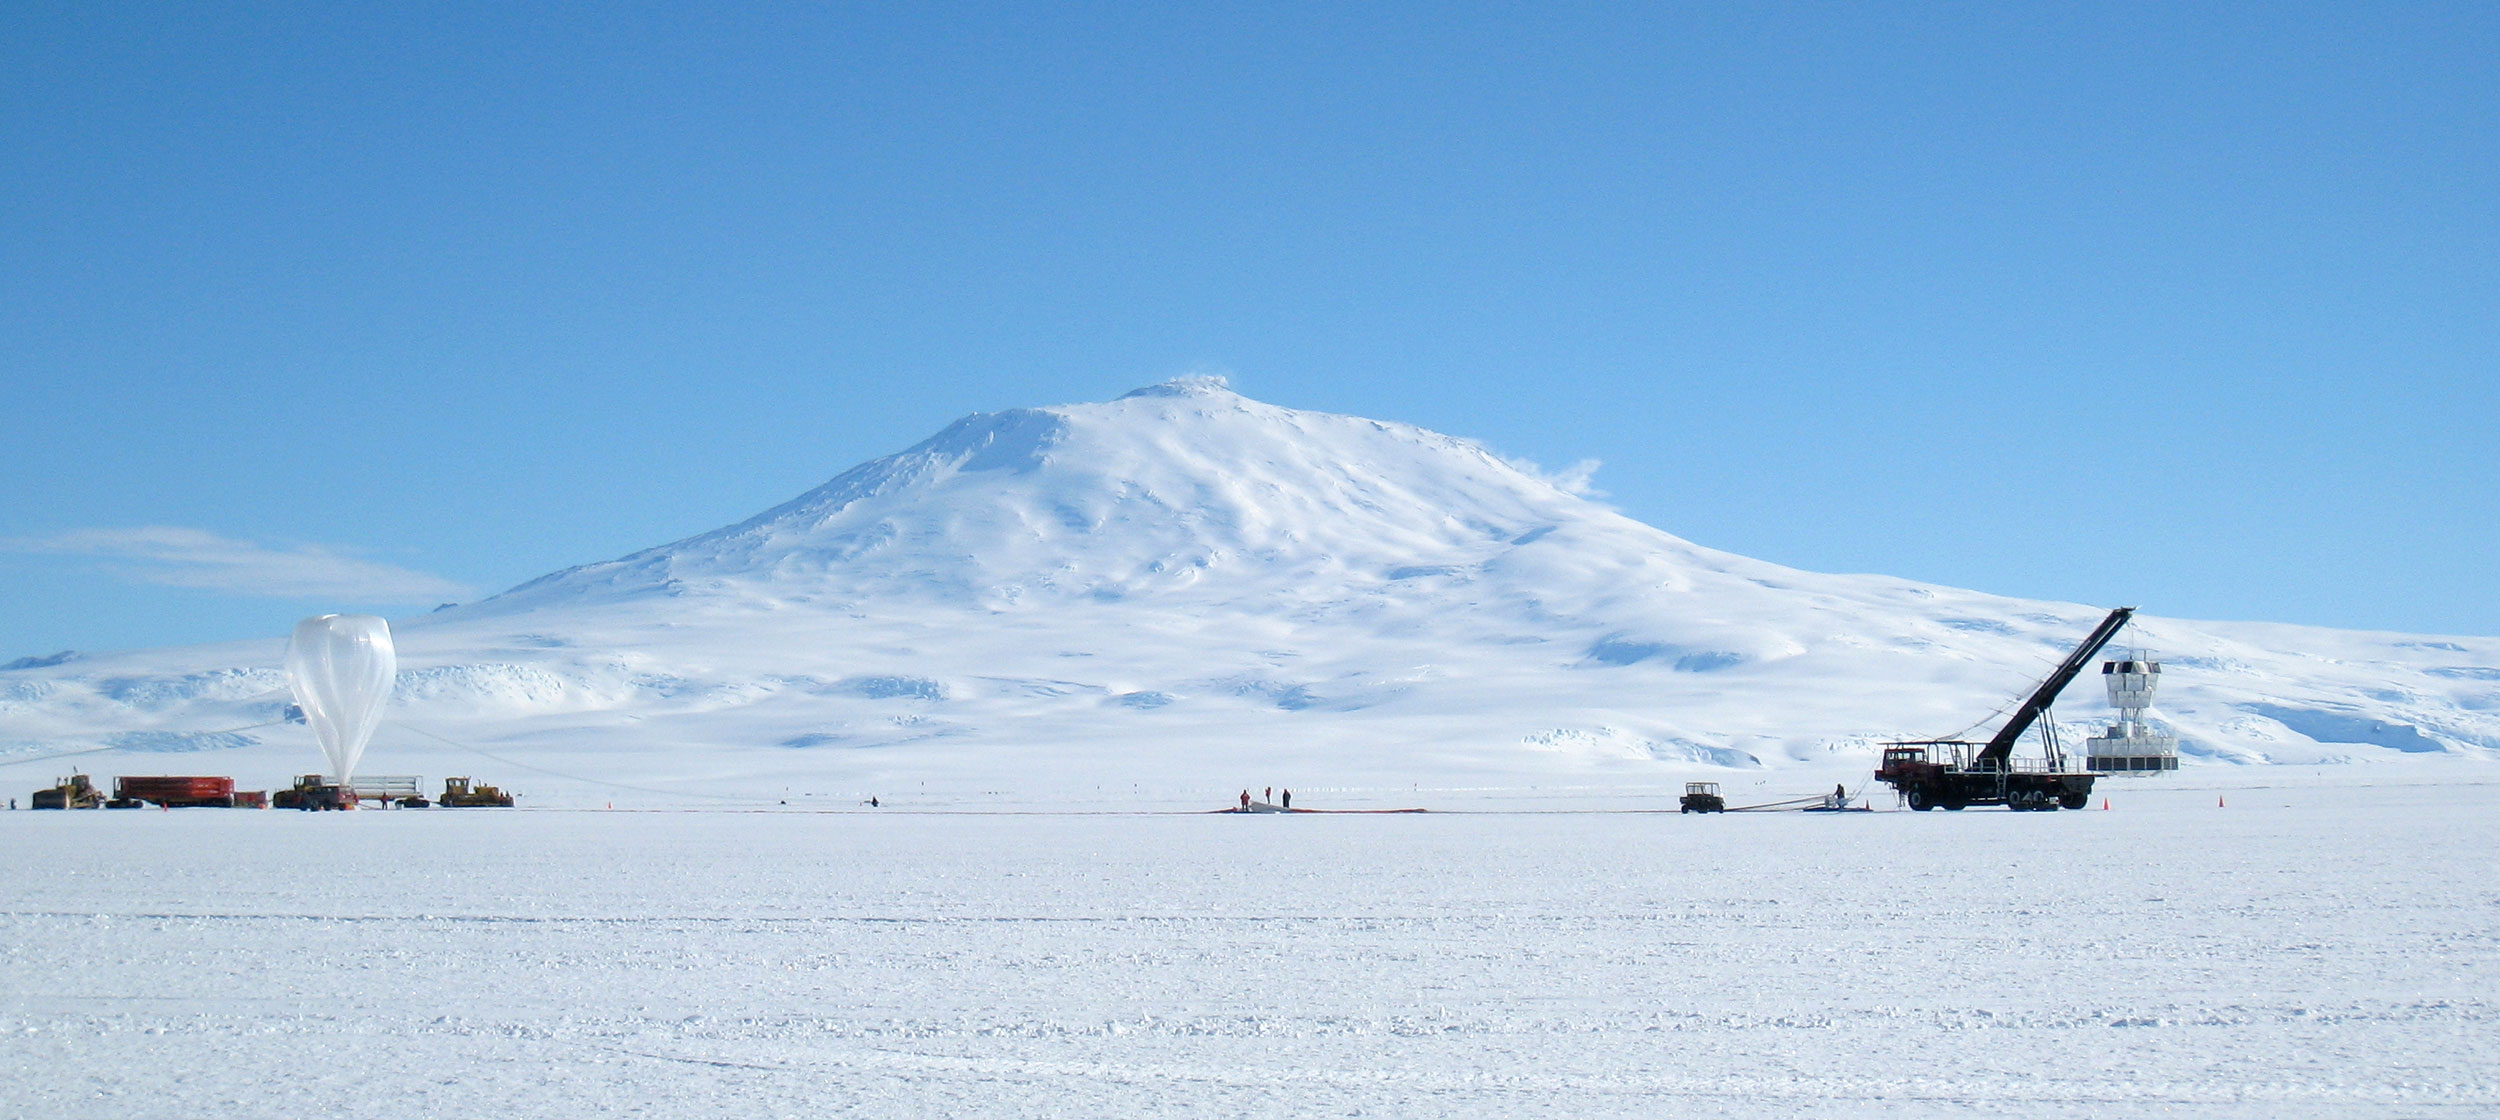 Scientists didn't detect a parallel universe in Antarctica. But they are learning more about mysterious, ghostly neutrinos